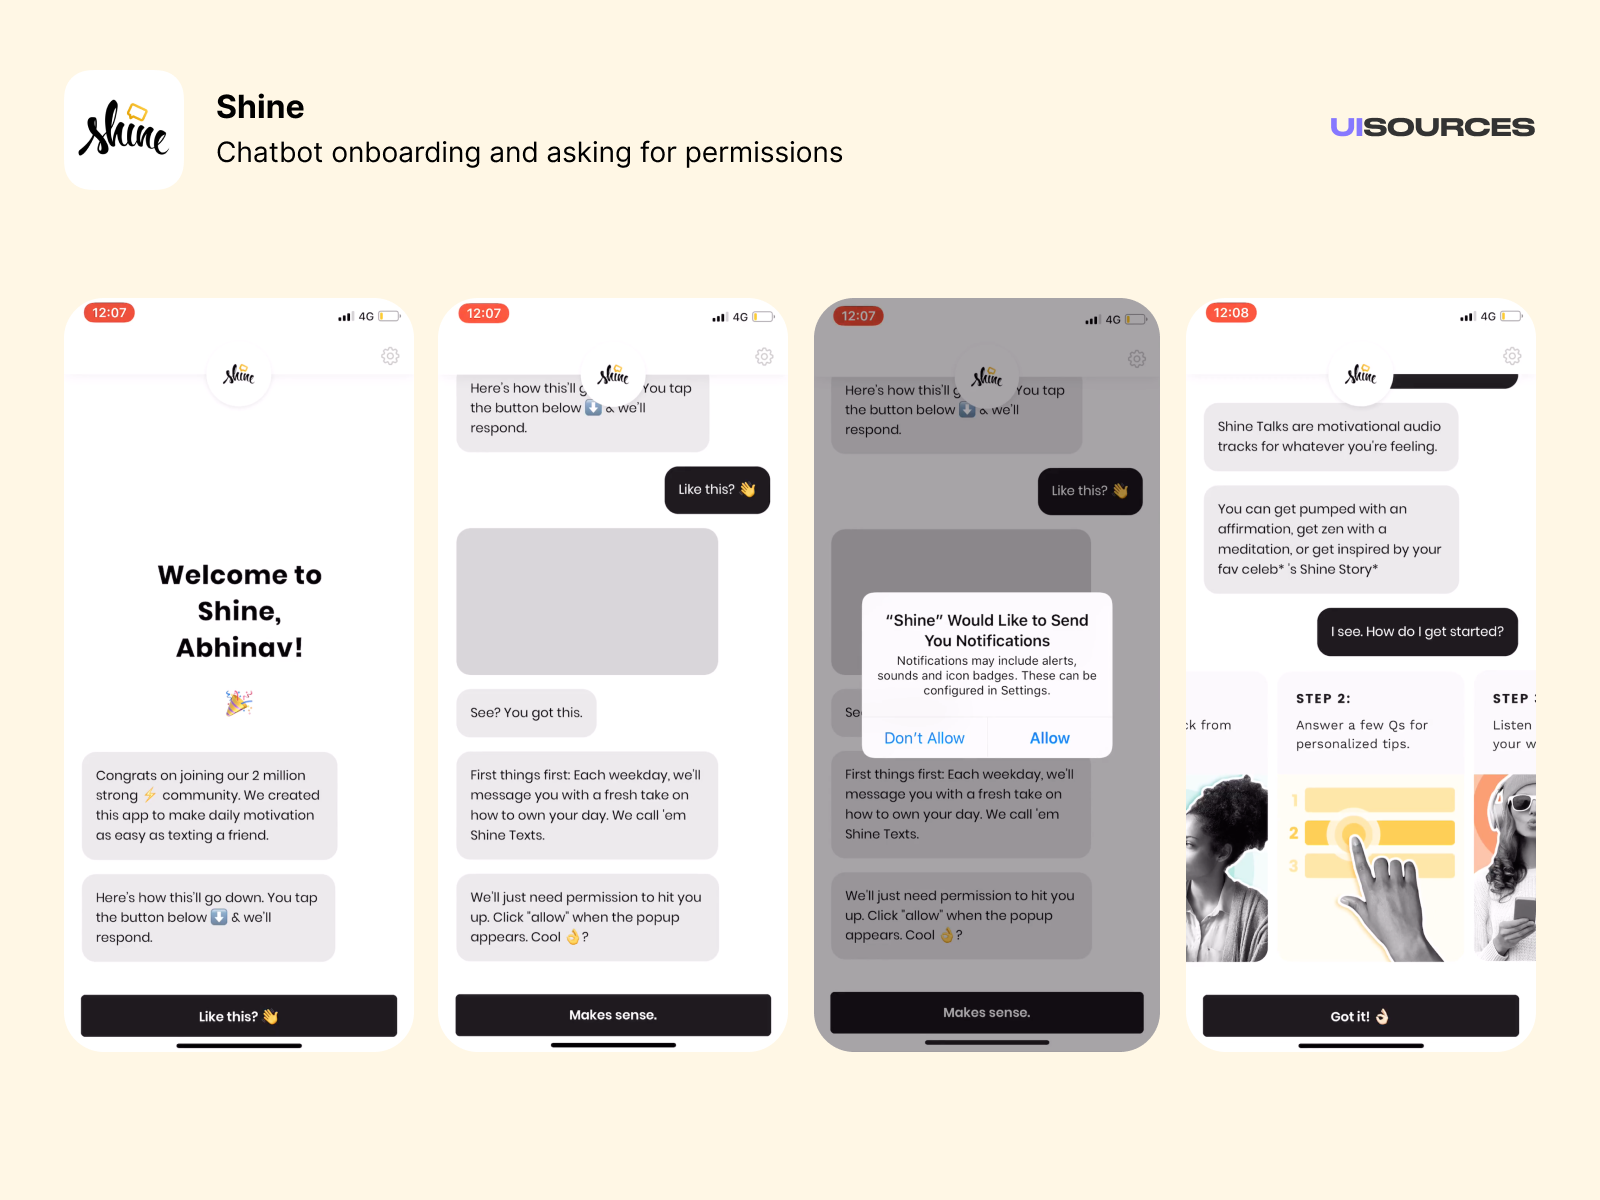 Chat bot onboarding and permissions